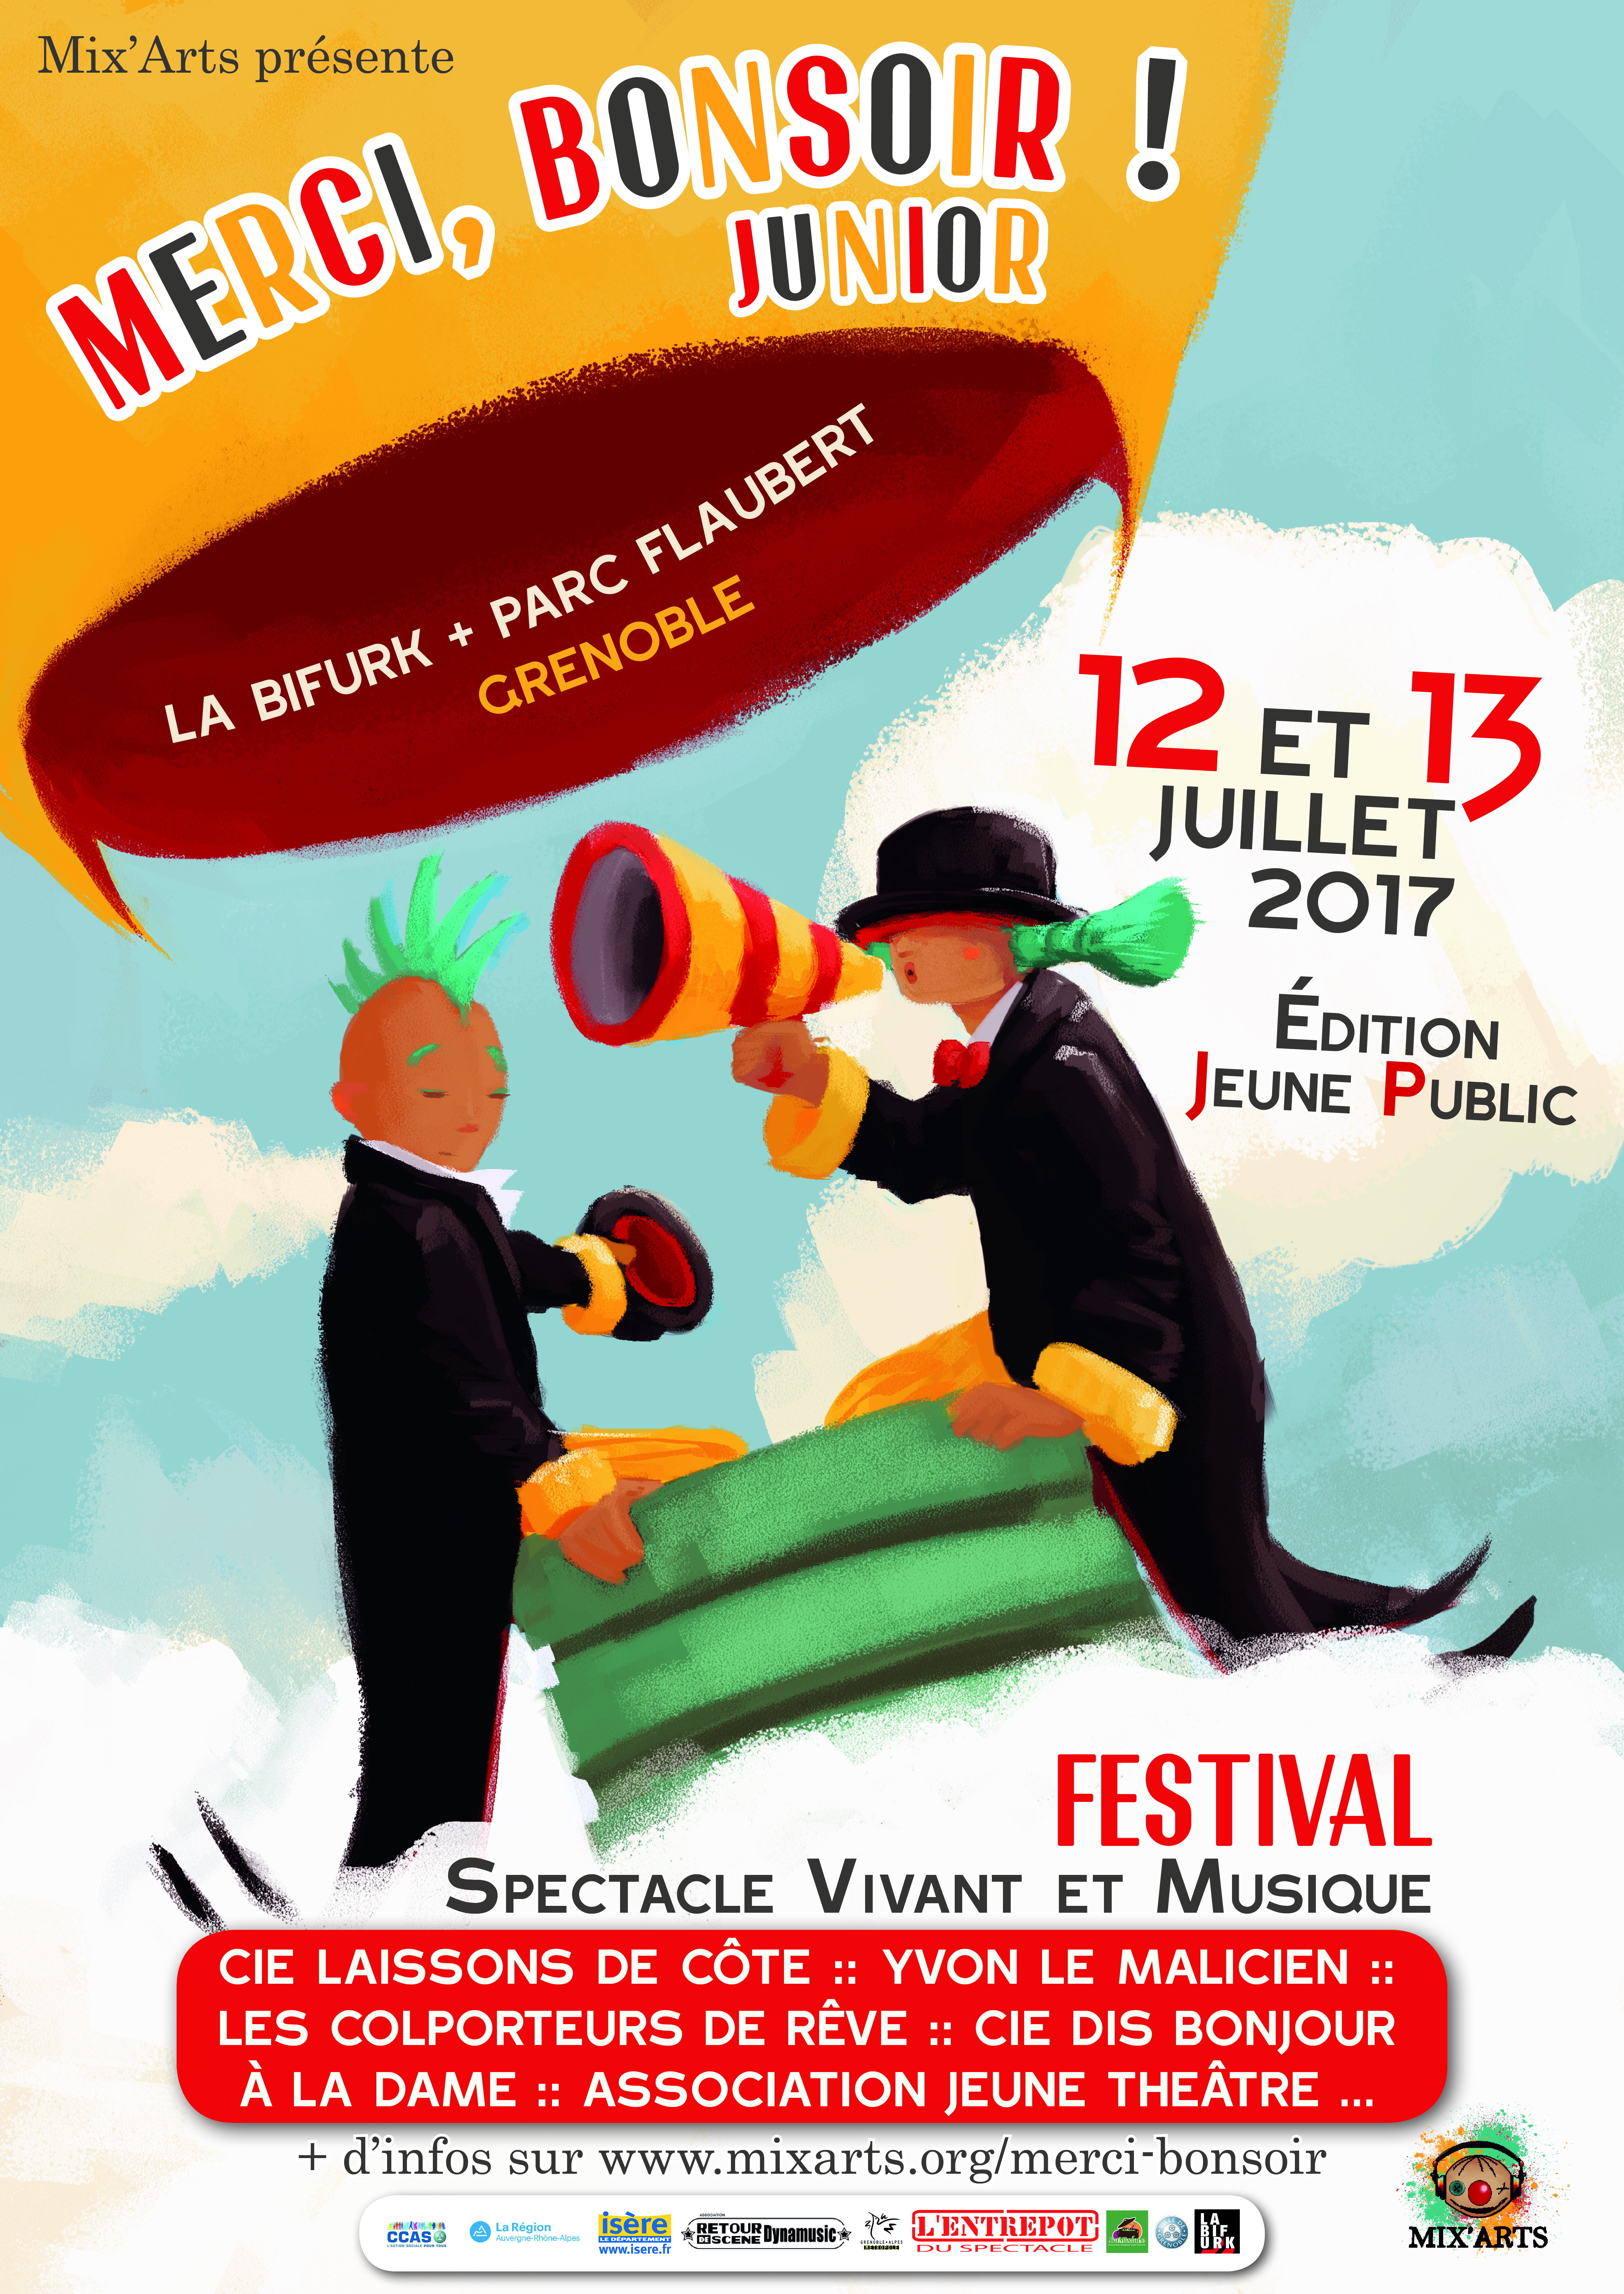 Festival Merci, Bonsoir Junior 2017